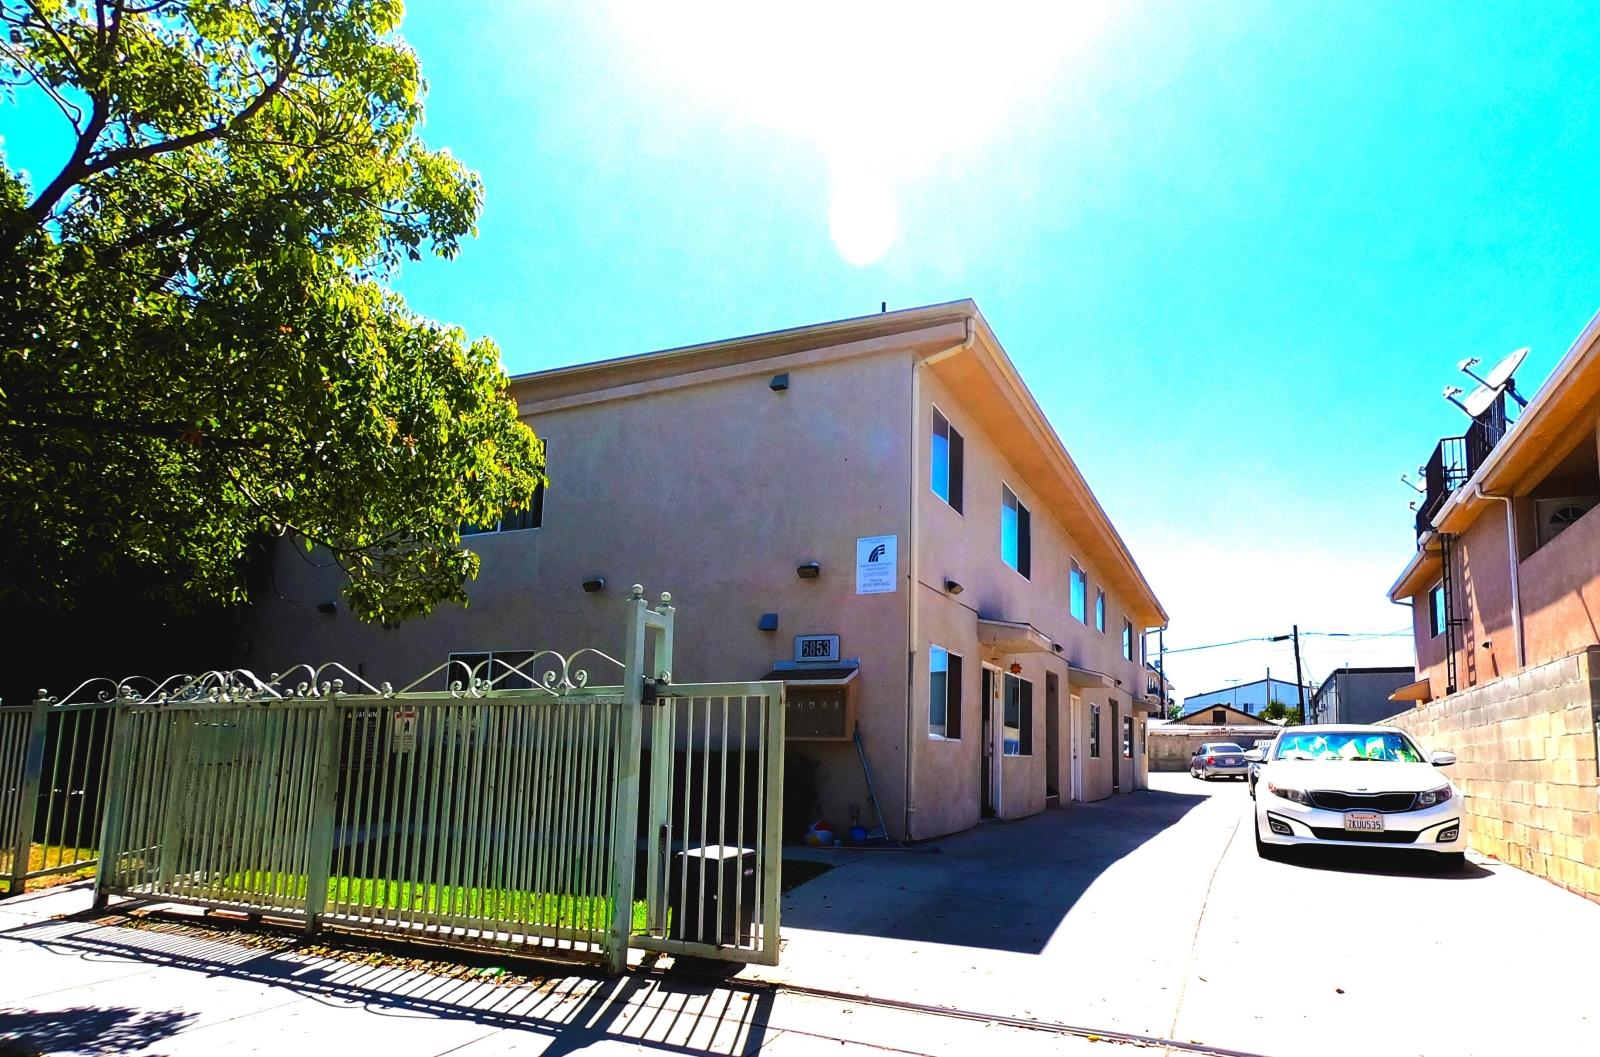 Apartment for rent in North Hollywood, CA 91605, 3 Beds, 2 ...